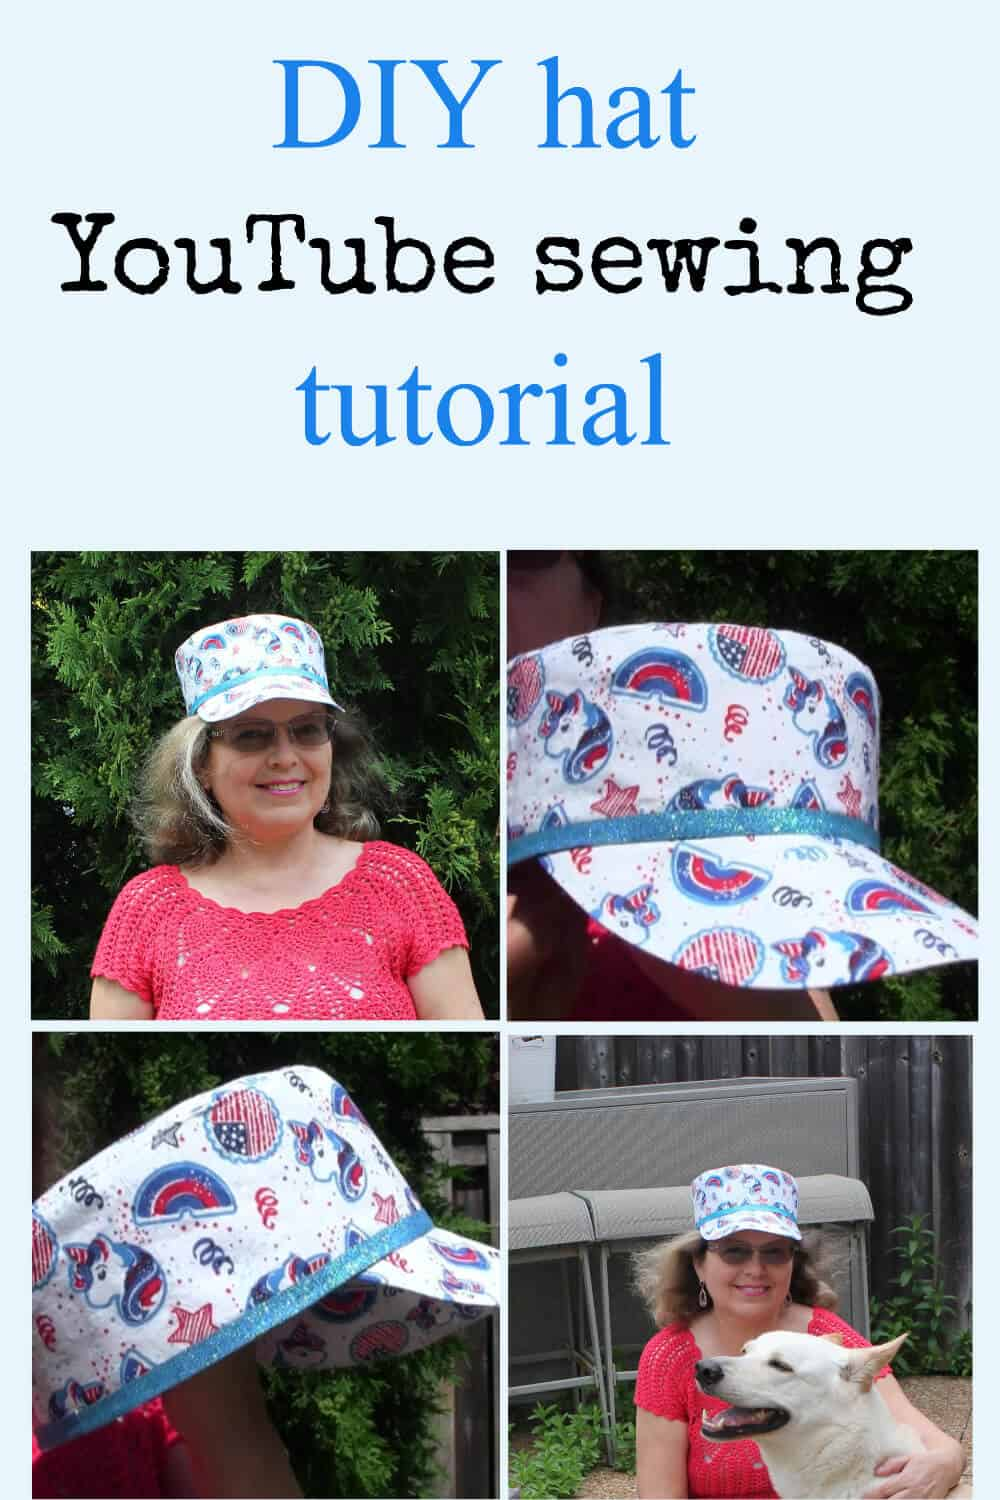 DIY hat cadet cap pin for Pinterest